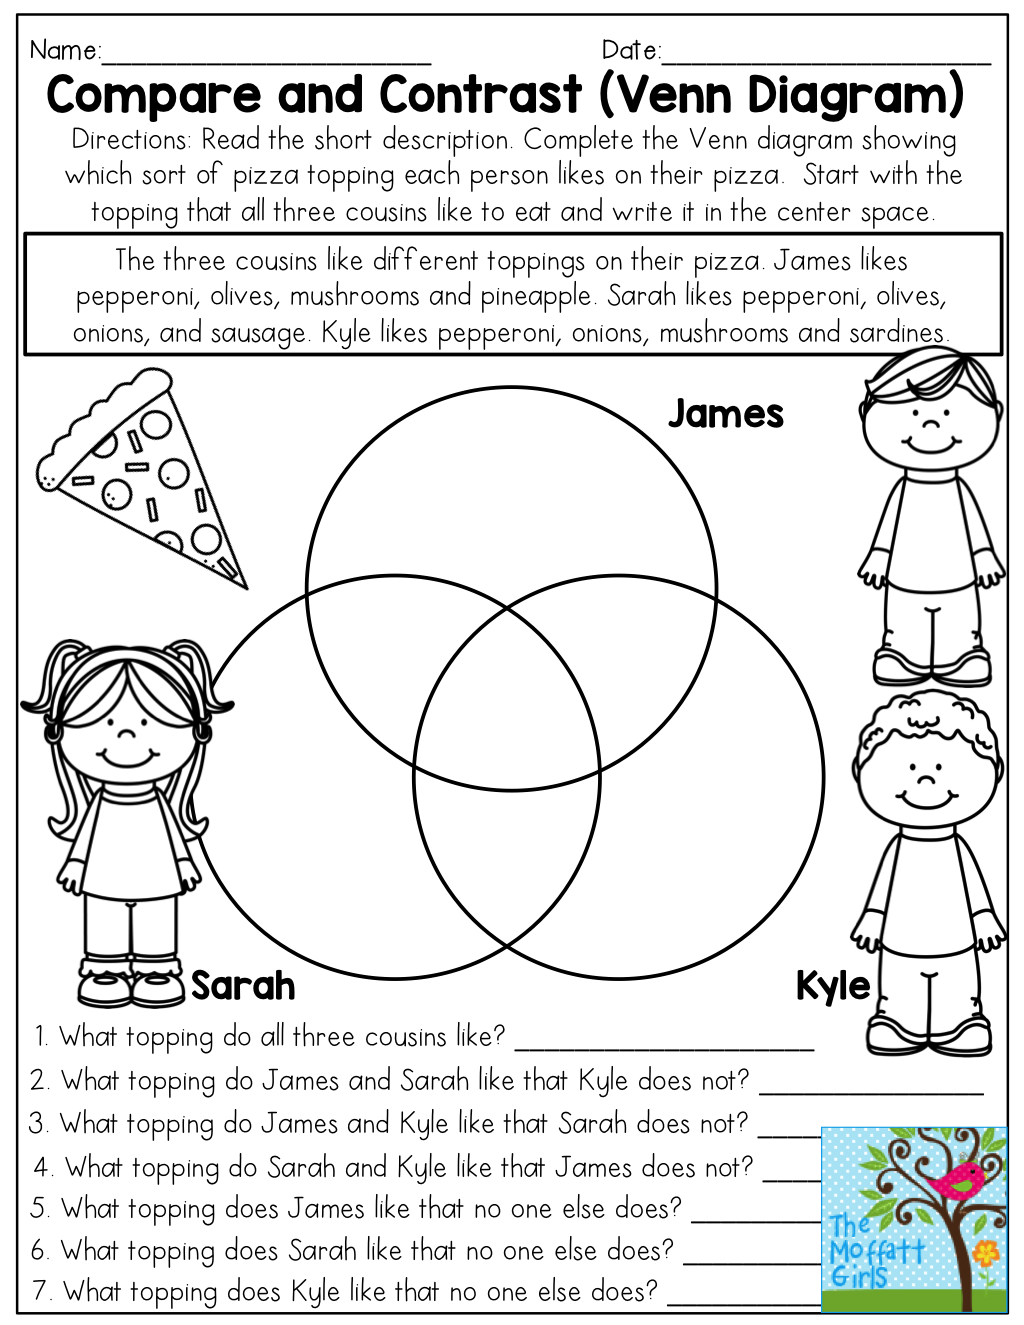 Compare And Contrast Venn Diagram 3 Things Read The